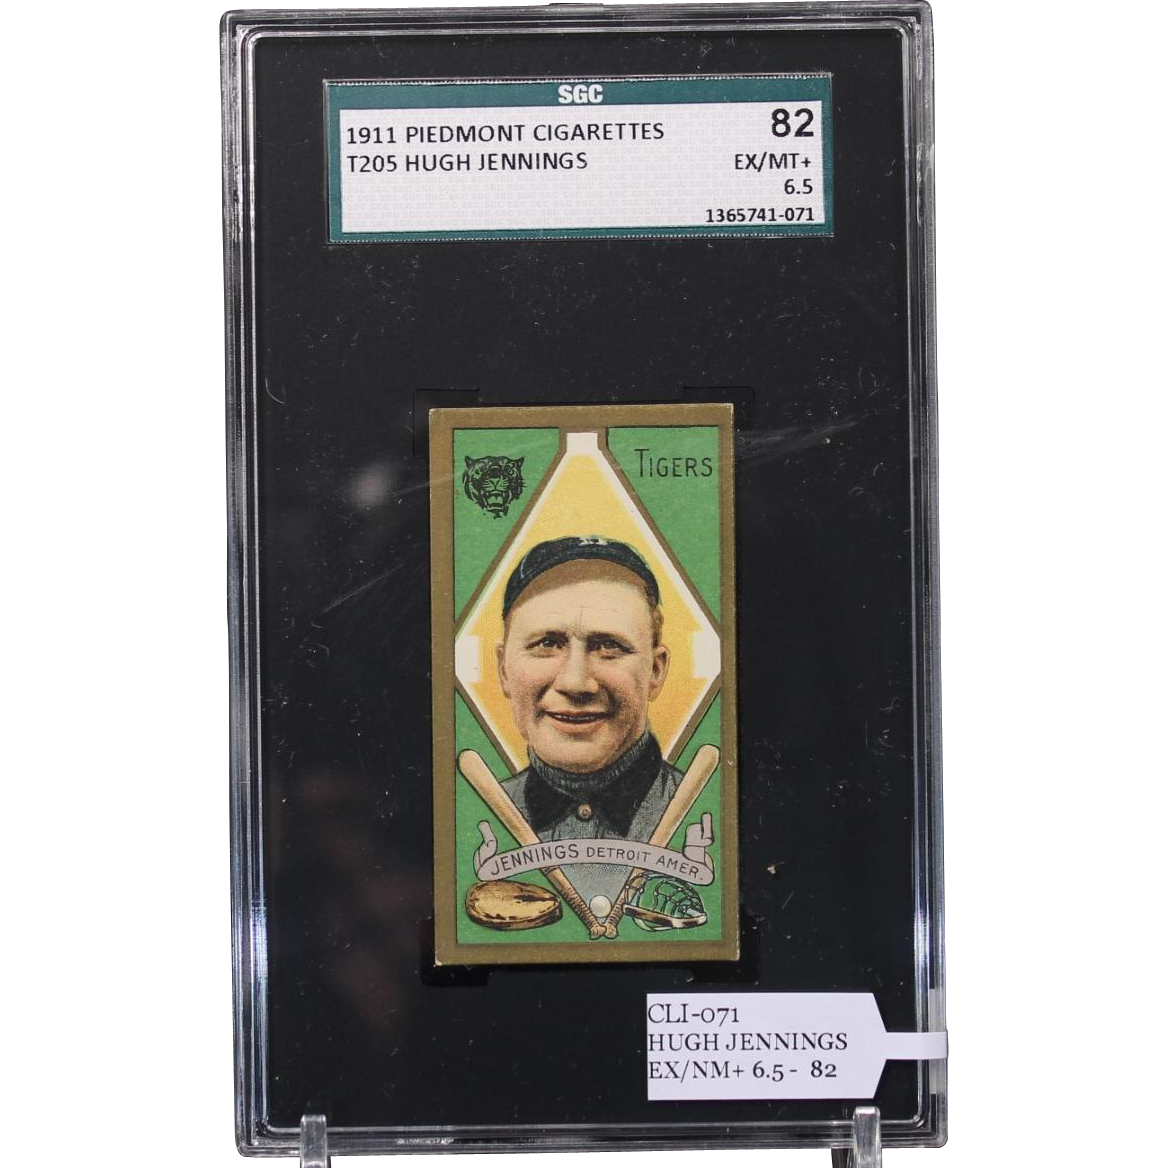 T205 HUGH JENNINGS SGC grade 82 EX/NM+ 6.5